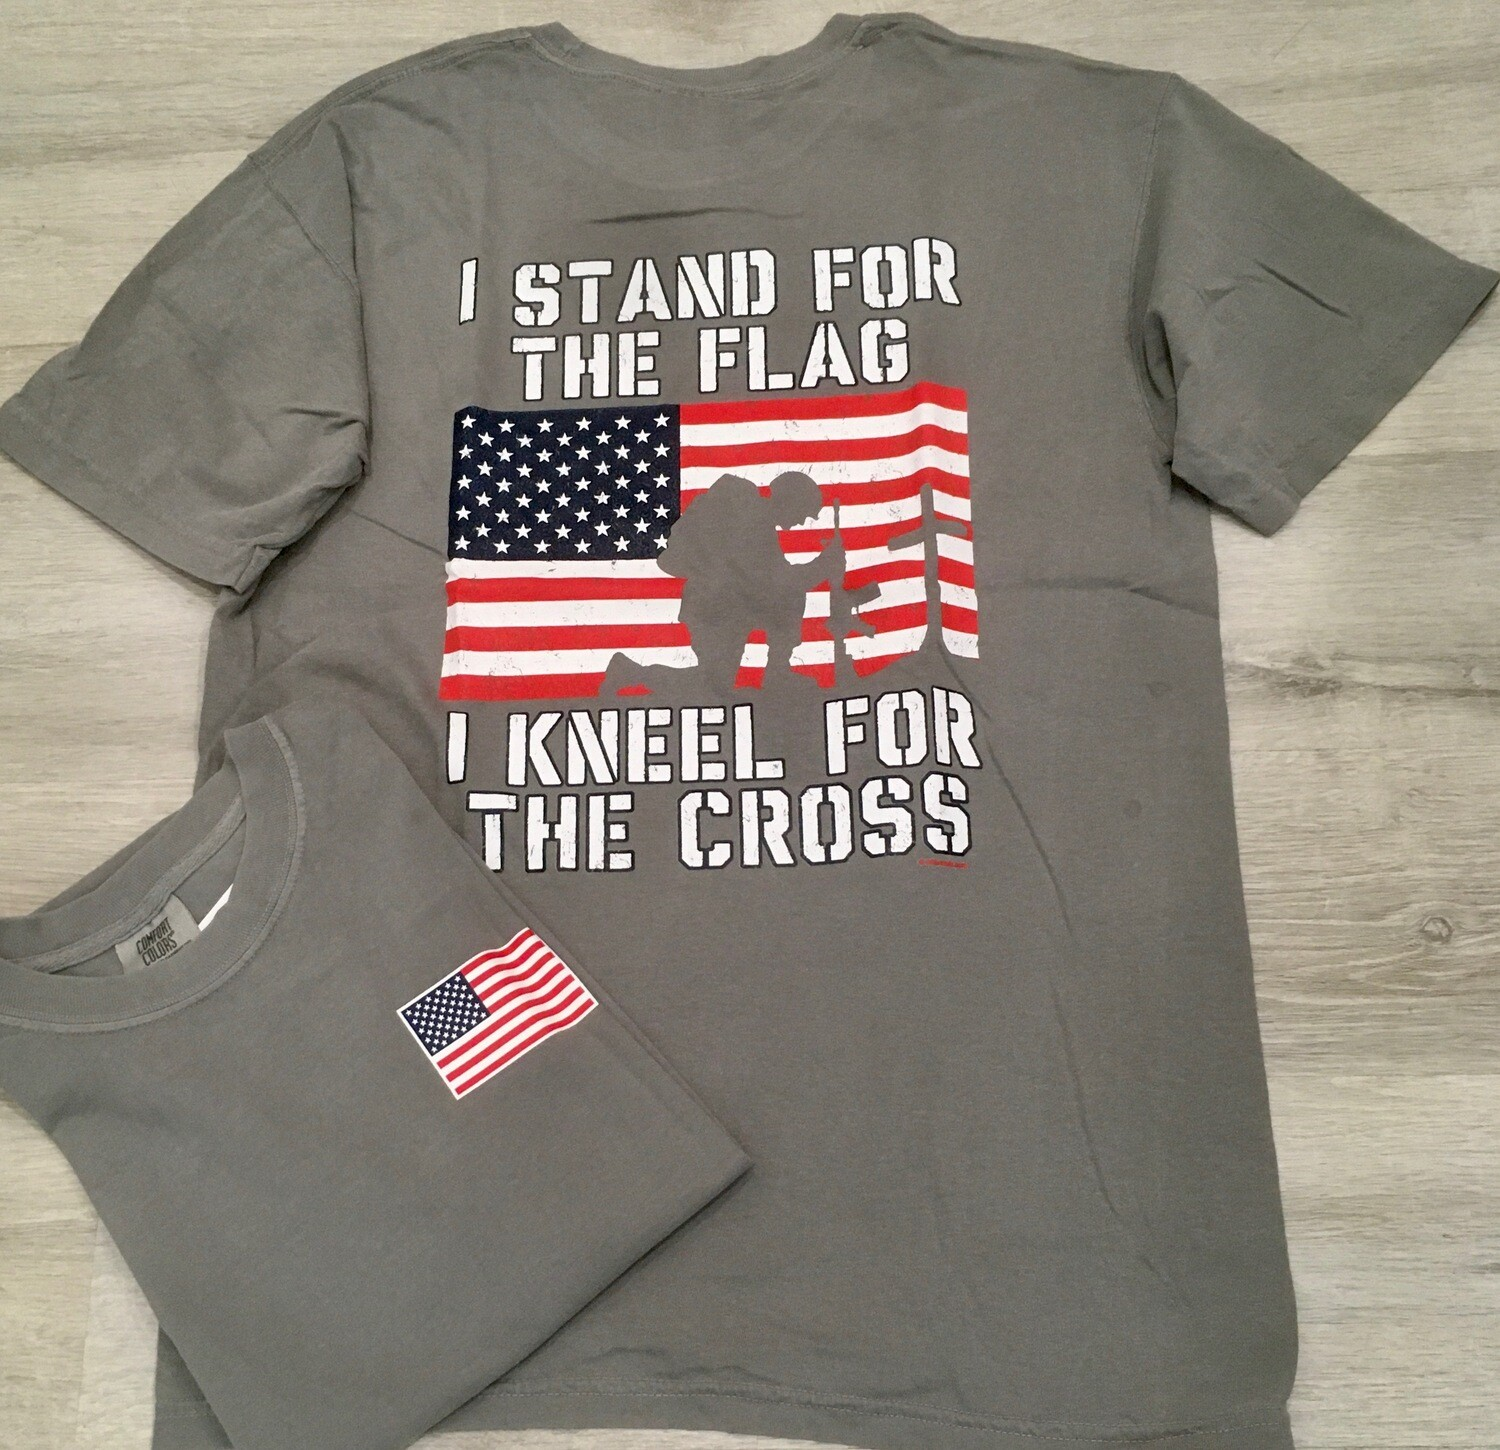 I Stand For The Flag Tee